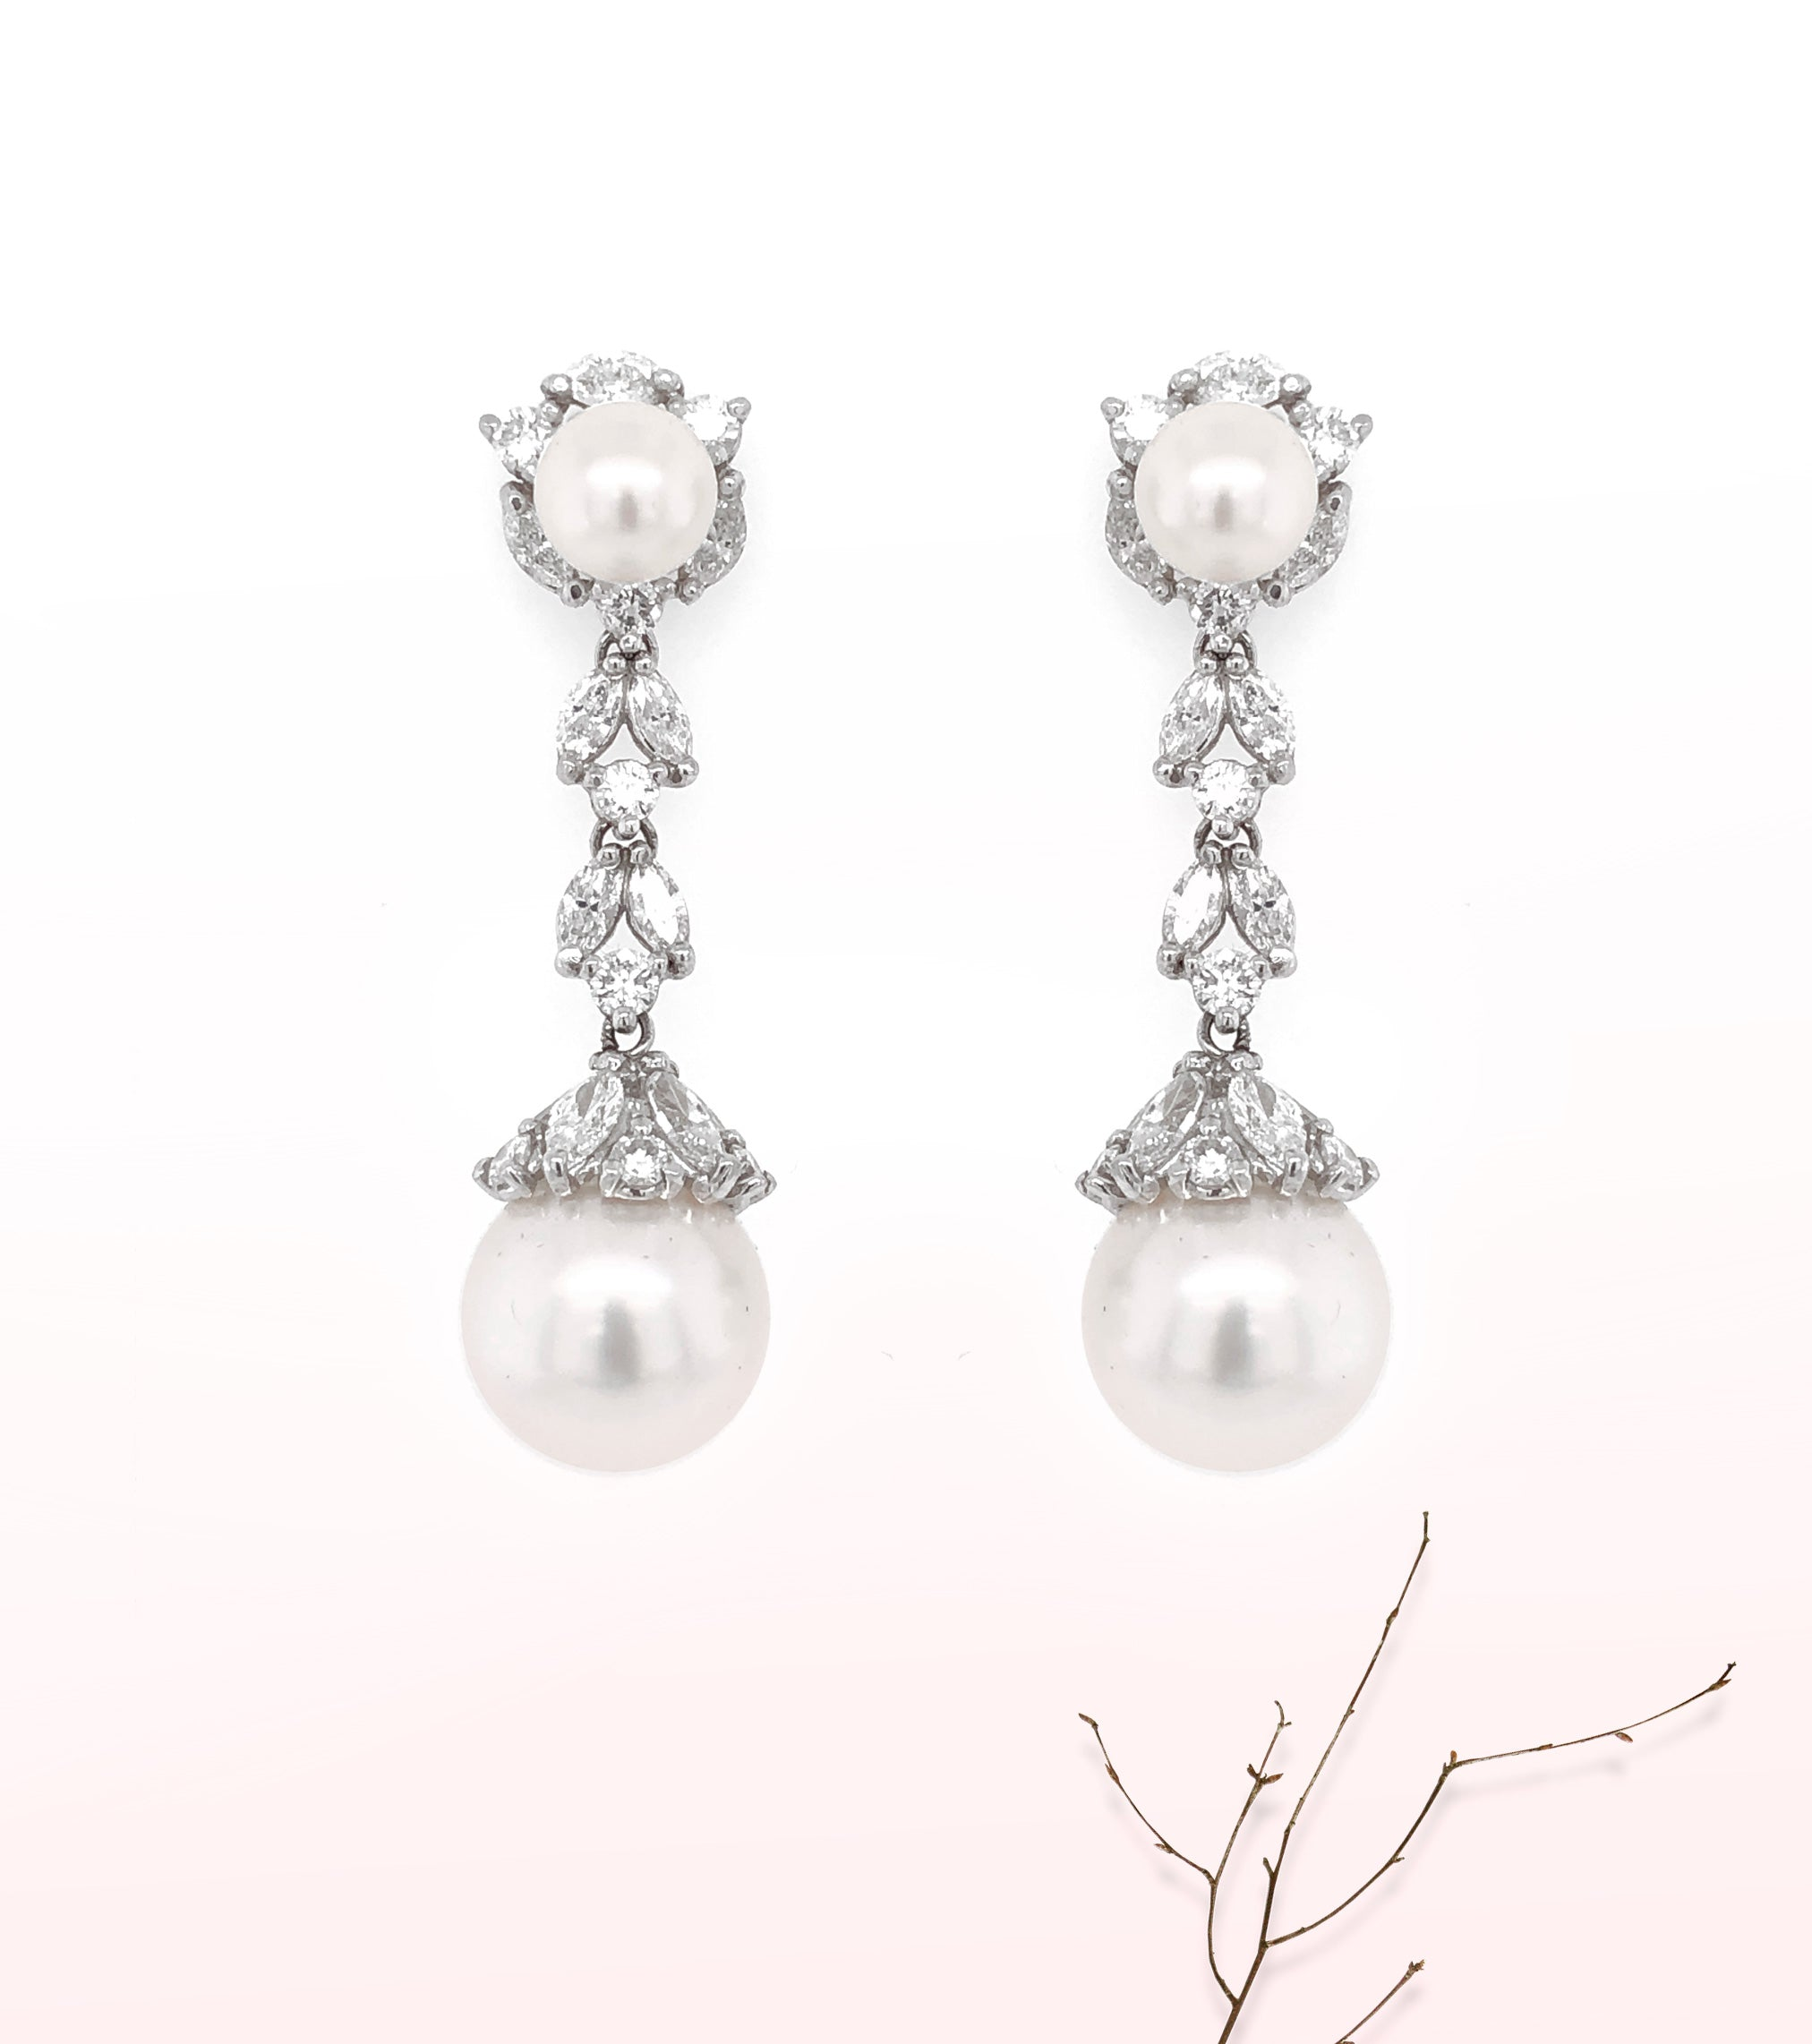 Dangle pearl earrings - Max Jewelry Inc.